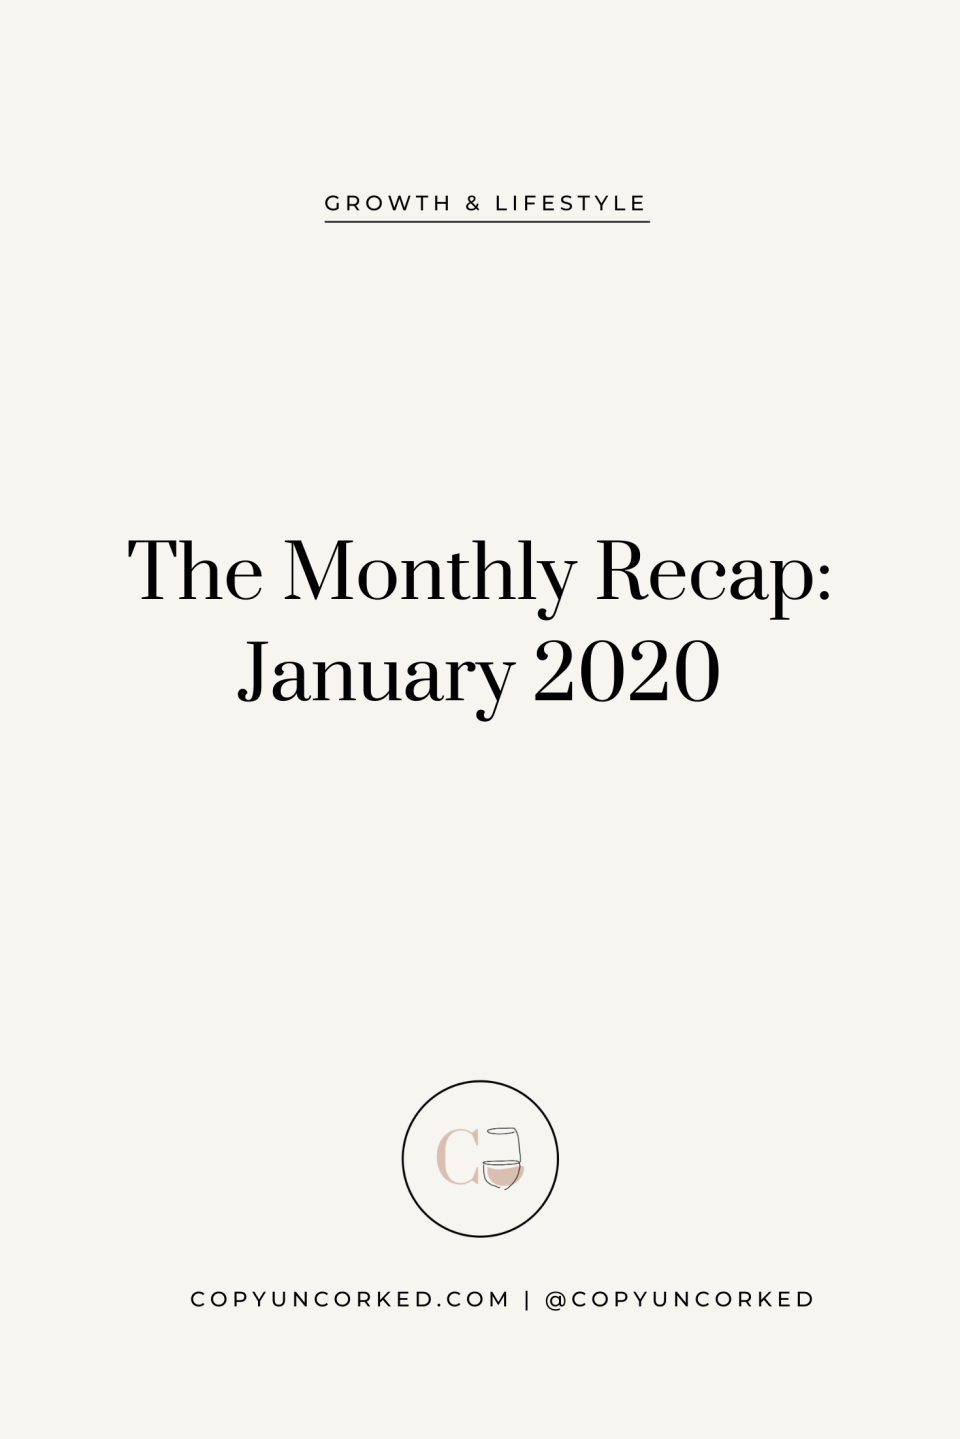 The Monthly Recap - January 2020 - copyuncorked.com